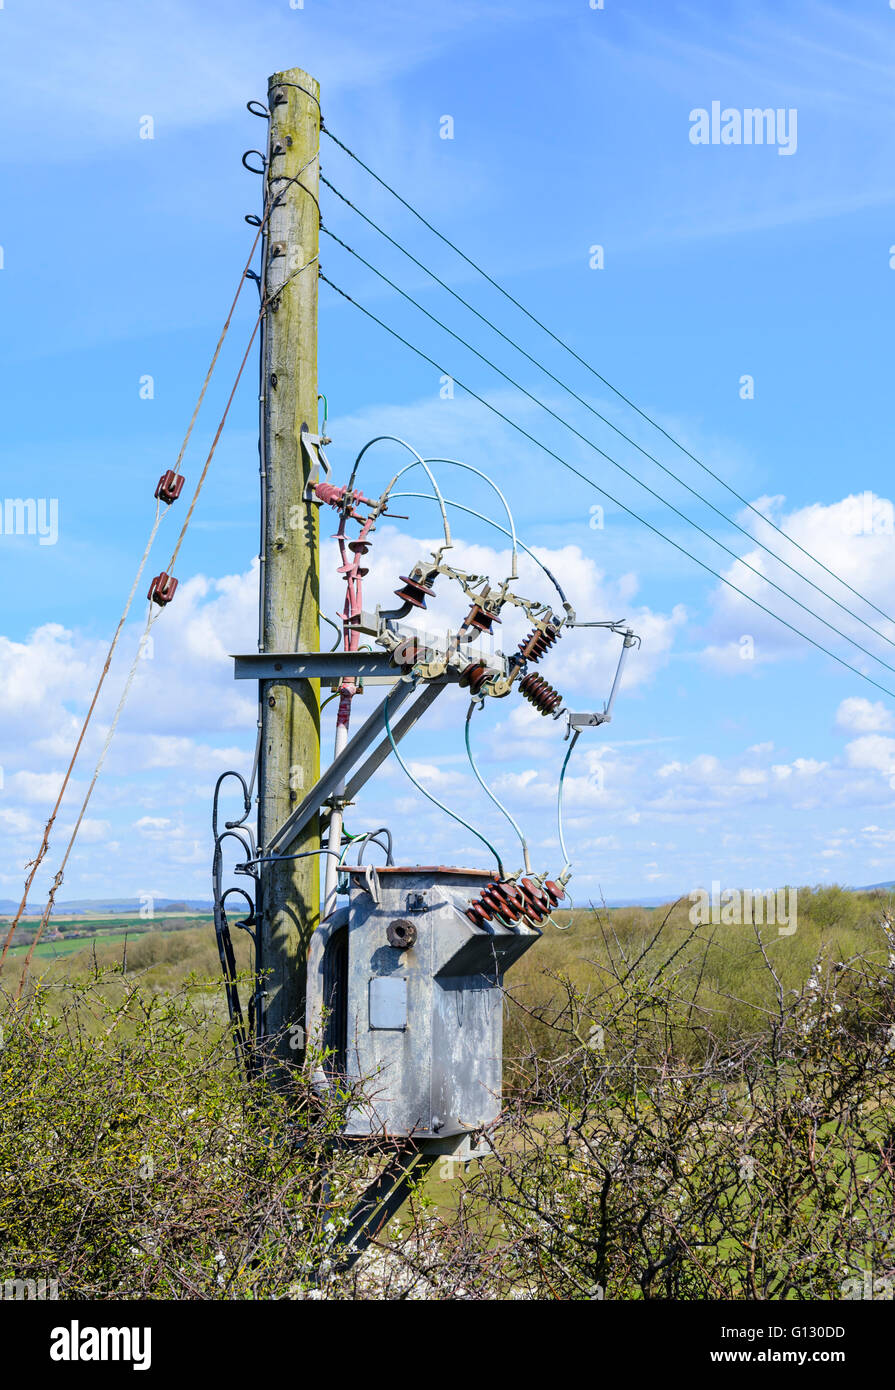 Small electricity distribution point on a wooden post in the British countryside. - Stock Image